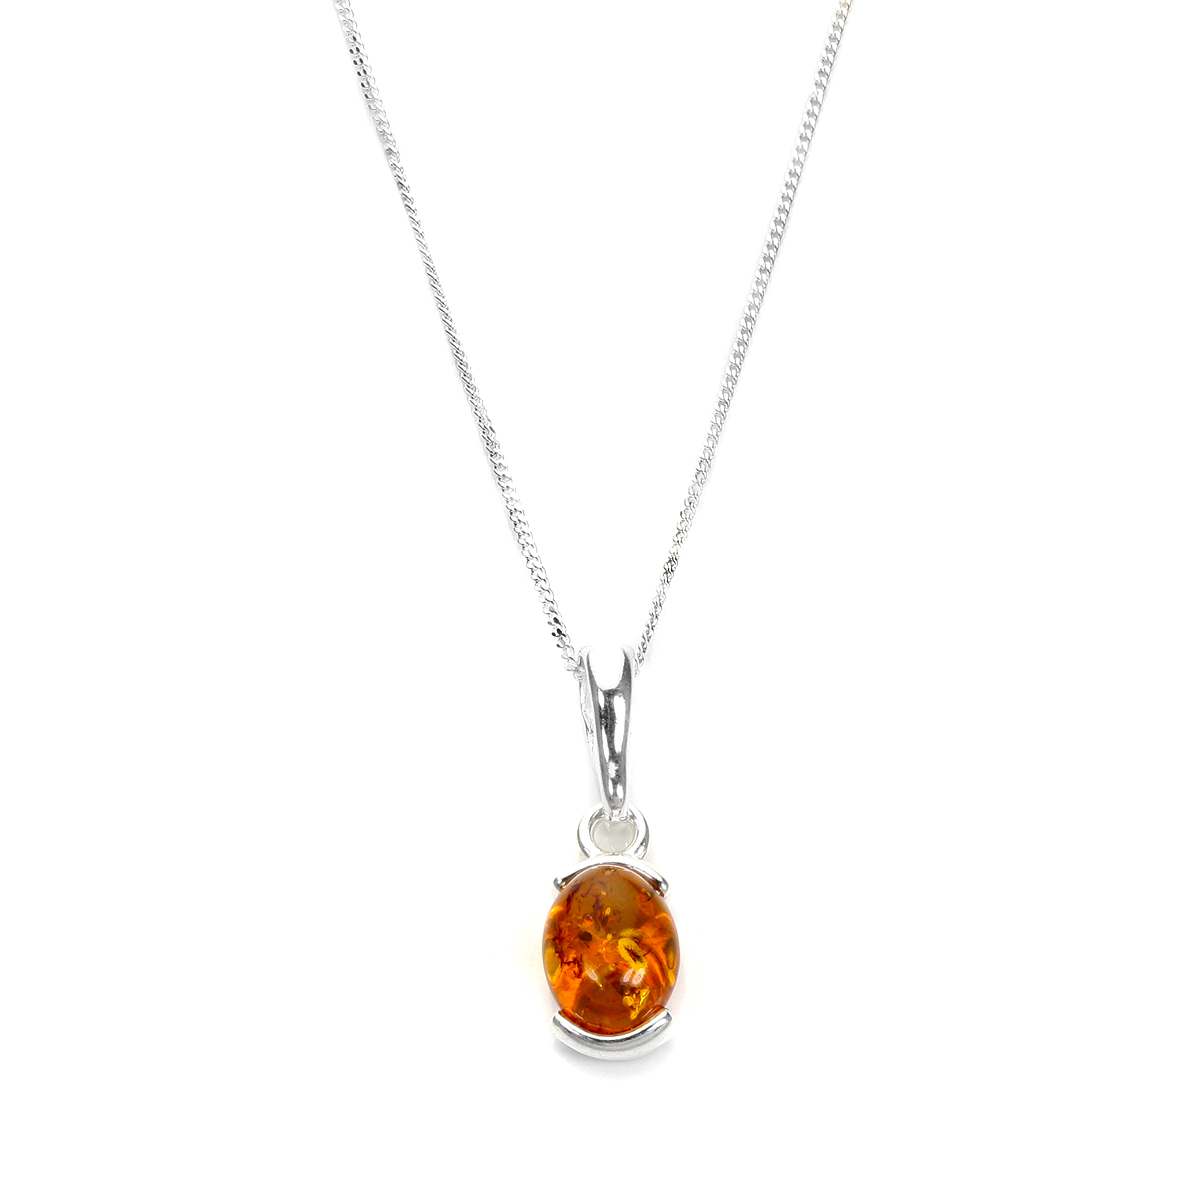 An image of Small Sterling Silver Baltic Amber Oval Pendant